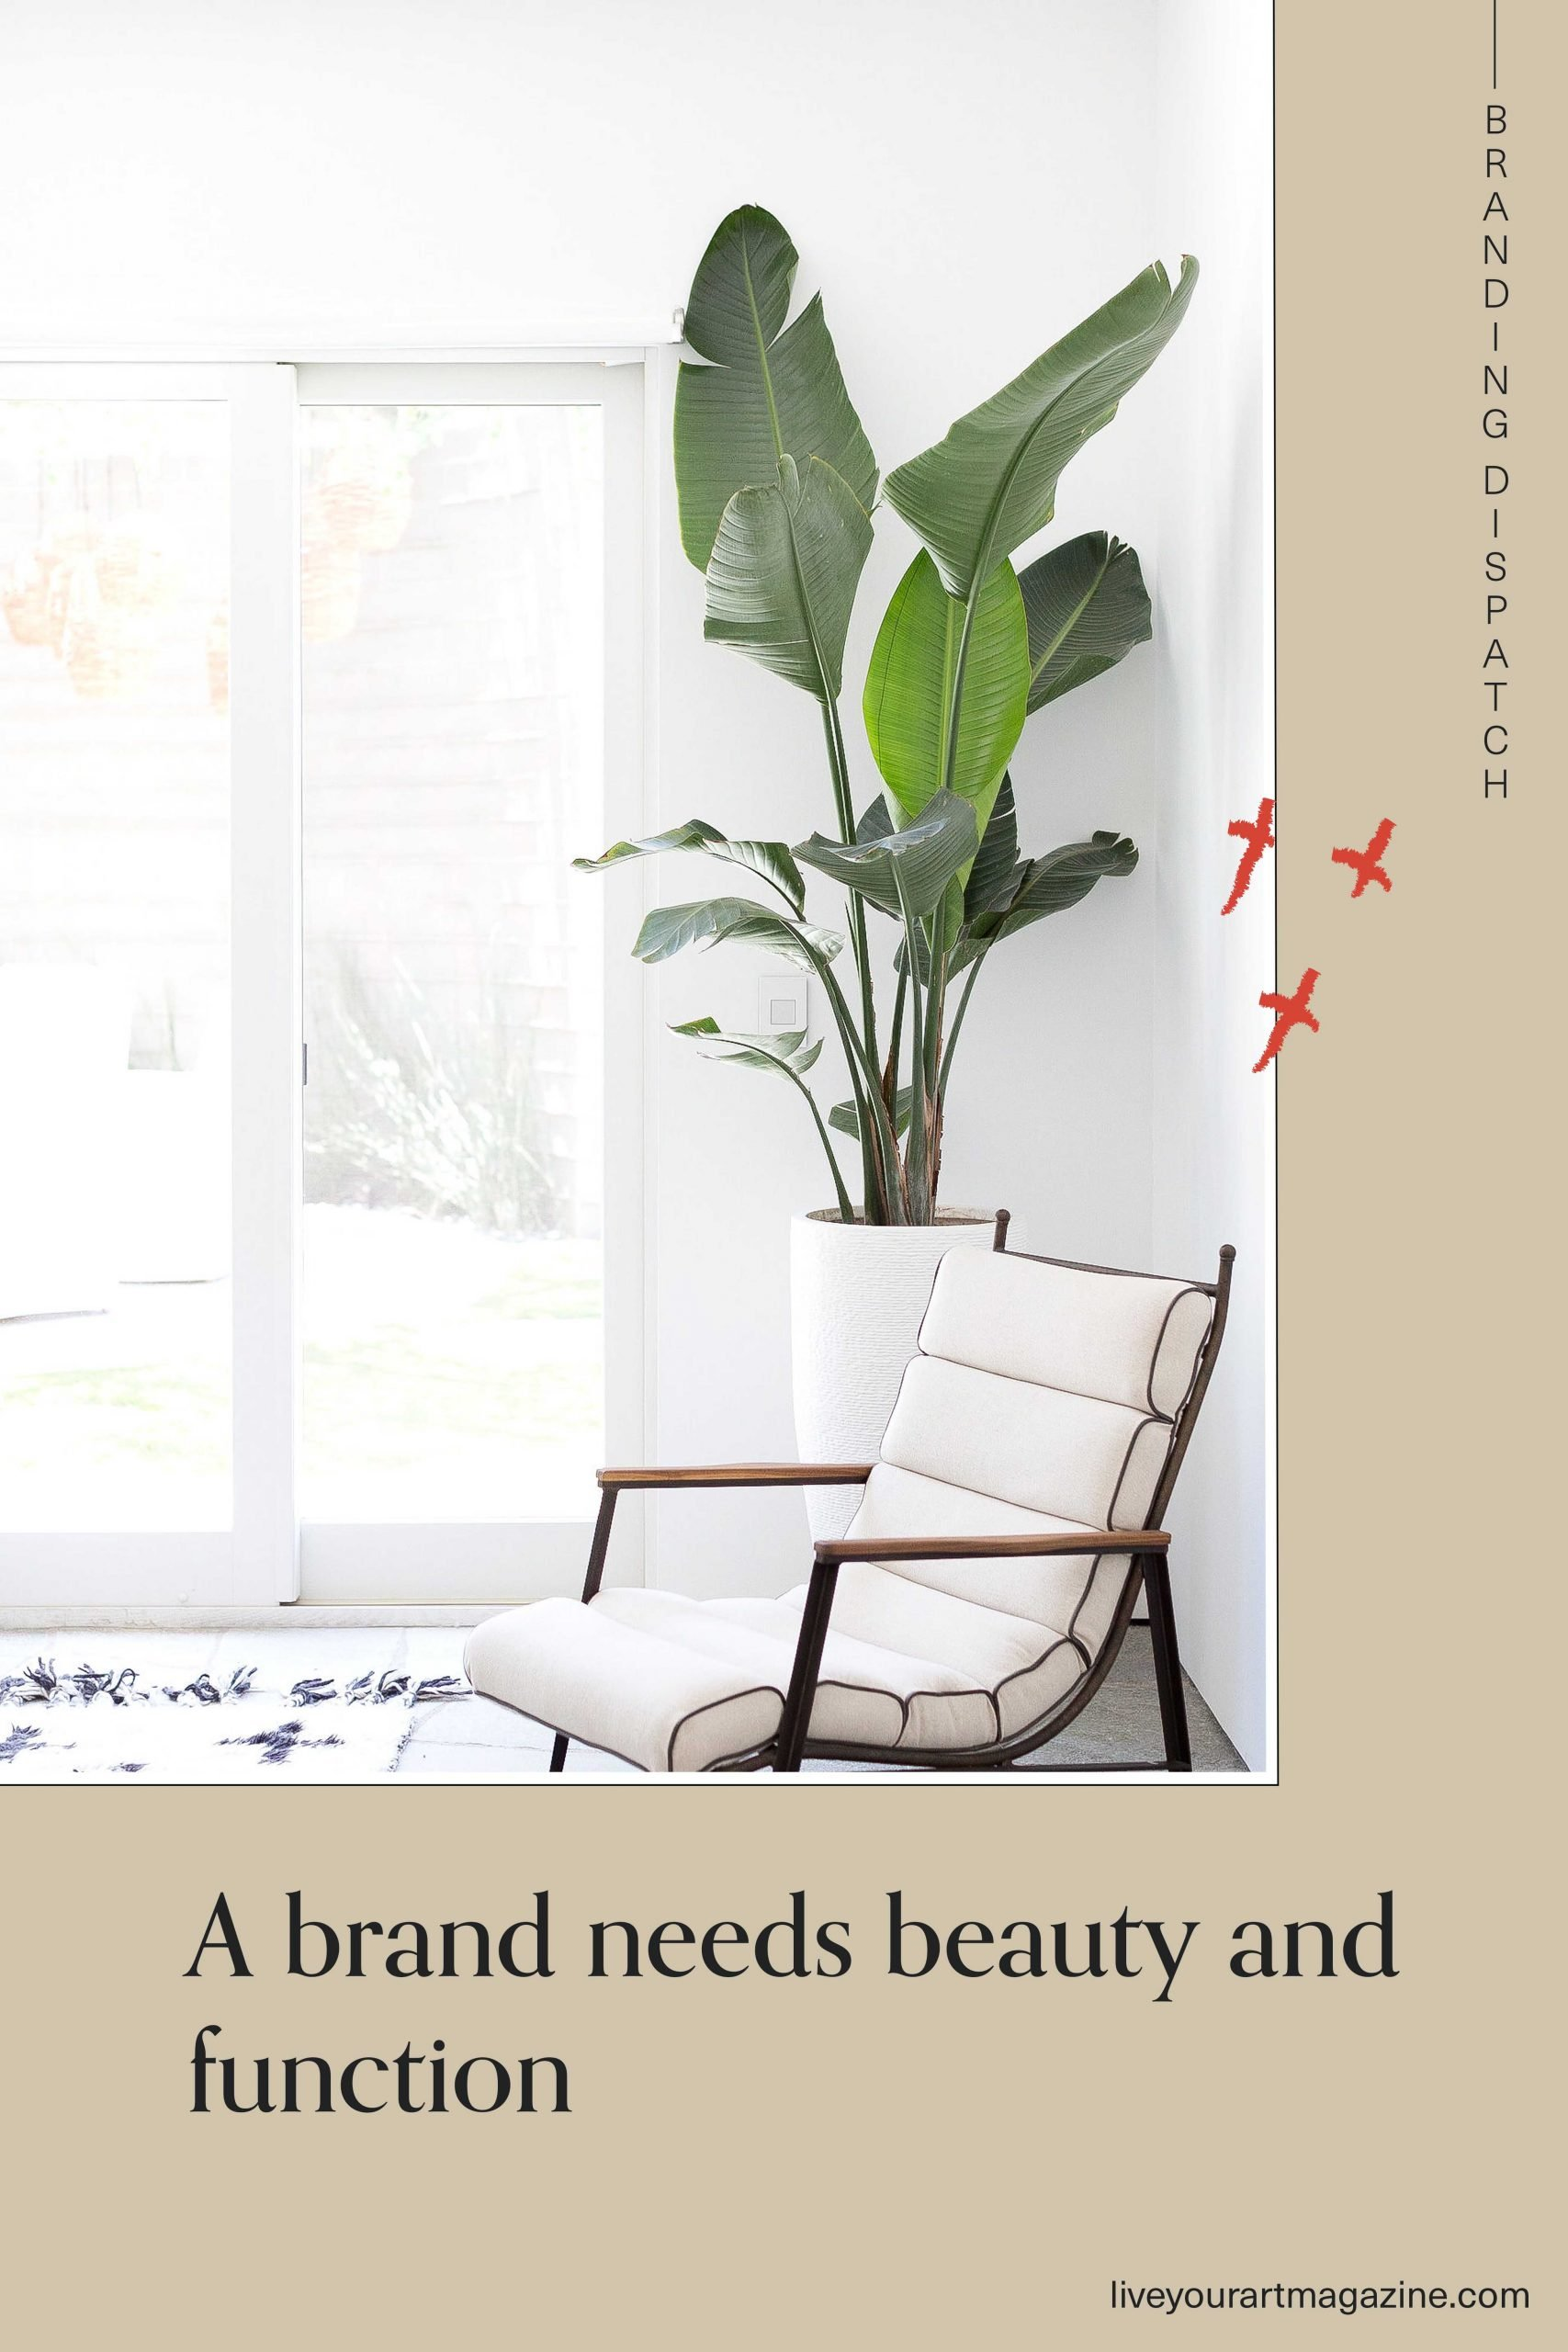 A brand needs beauty and function